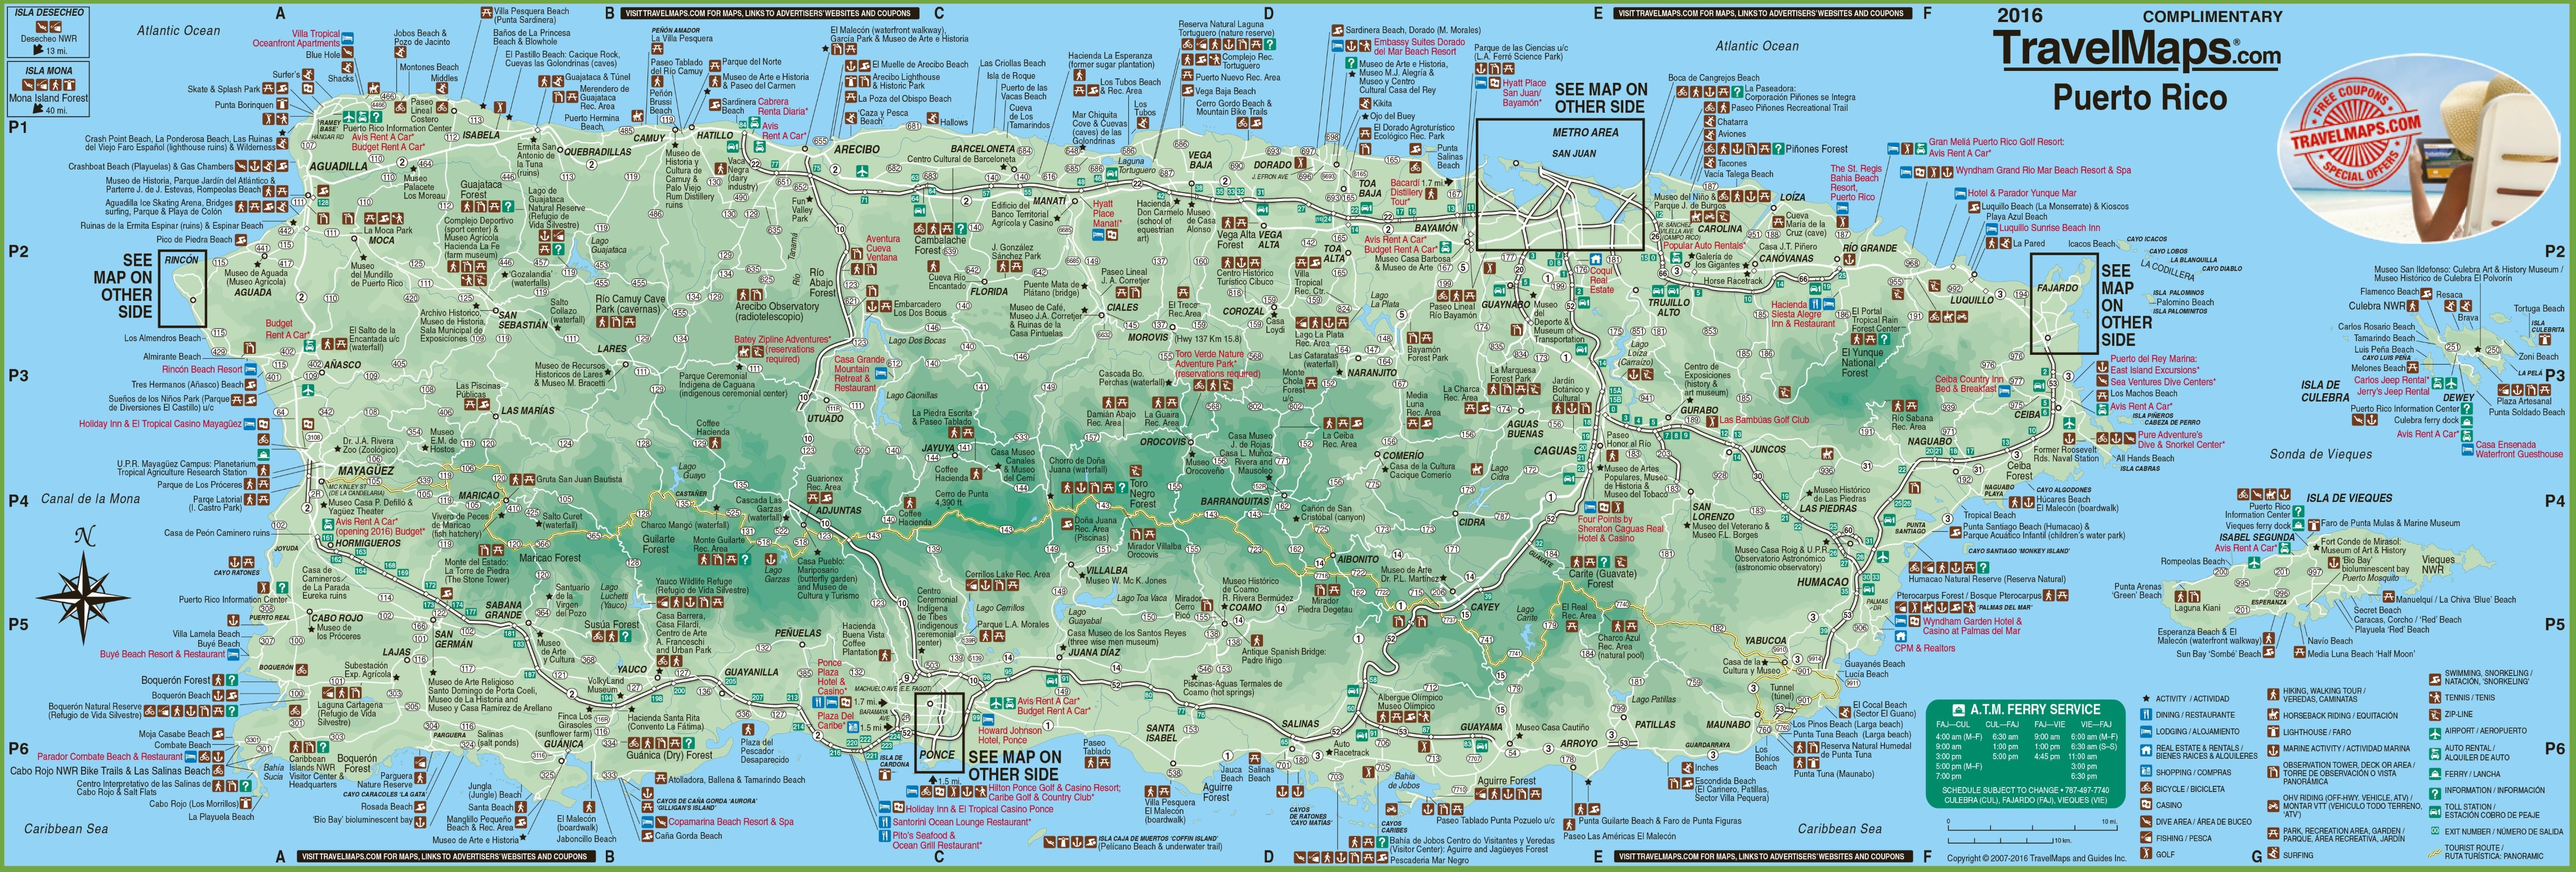 Large Detailed Tourist Map Of Puerto Rico With Cities And Towns - Puerto rico maps